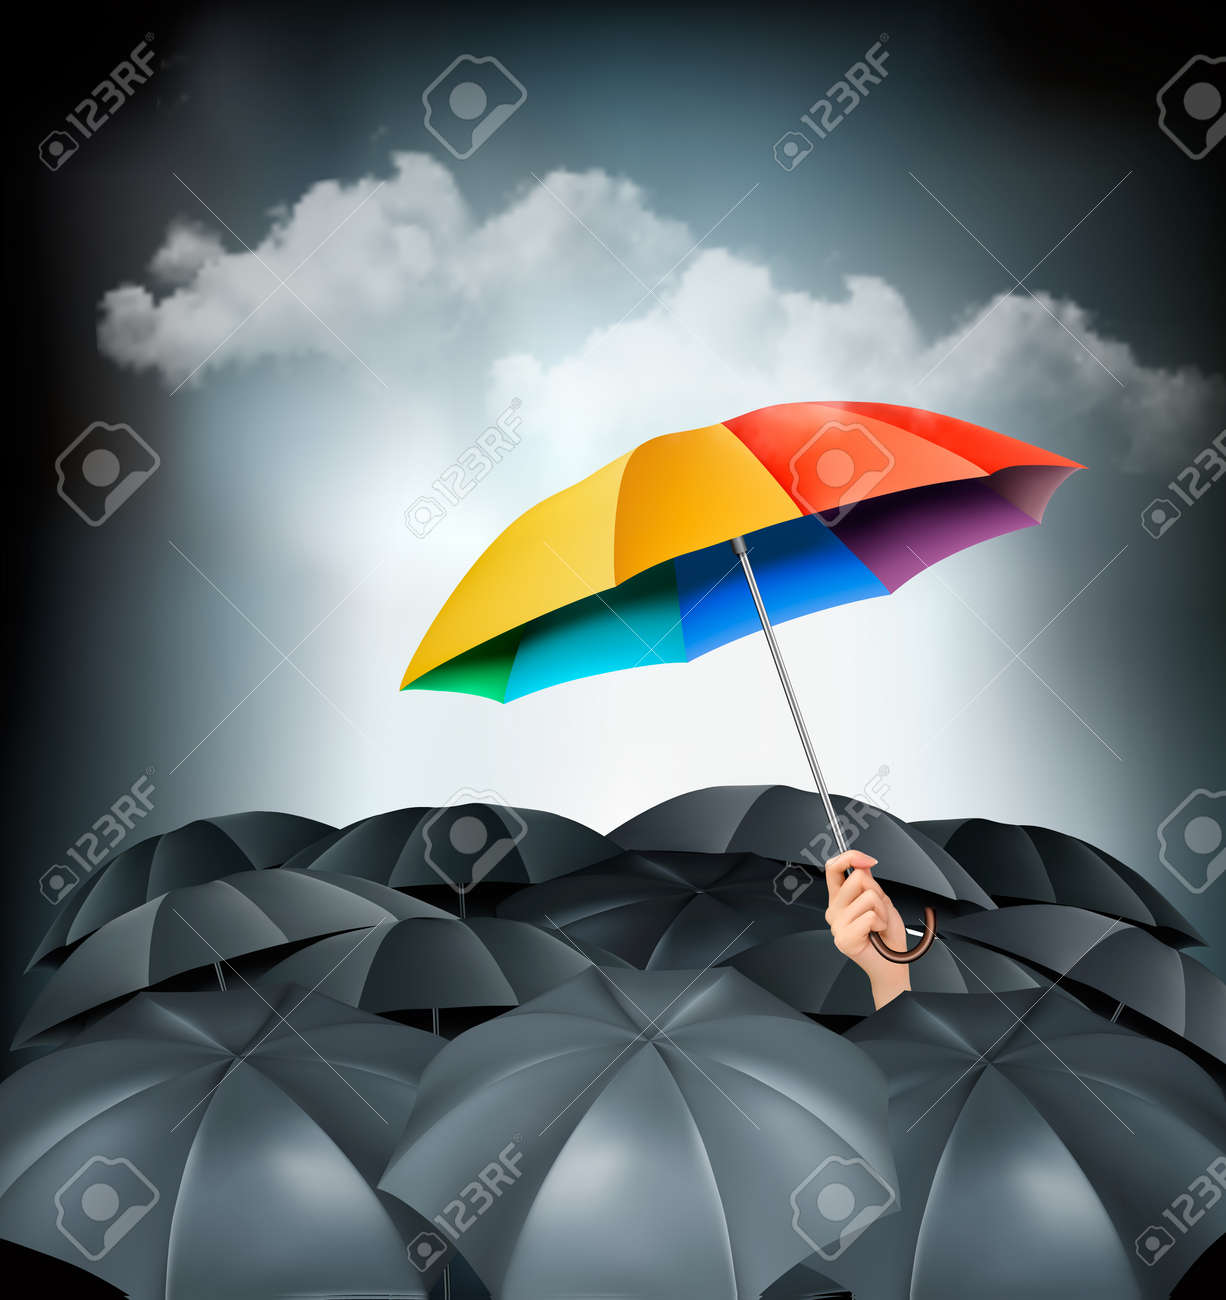 One rainbow umbrella standing out on a grey background. Unique concept. Vector. - 32601954